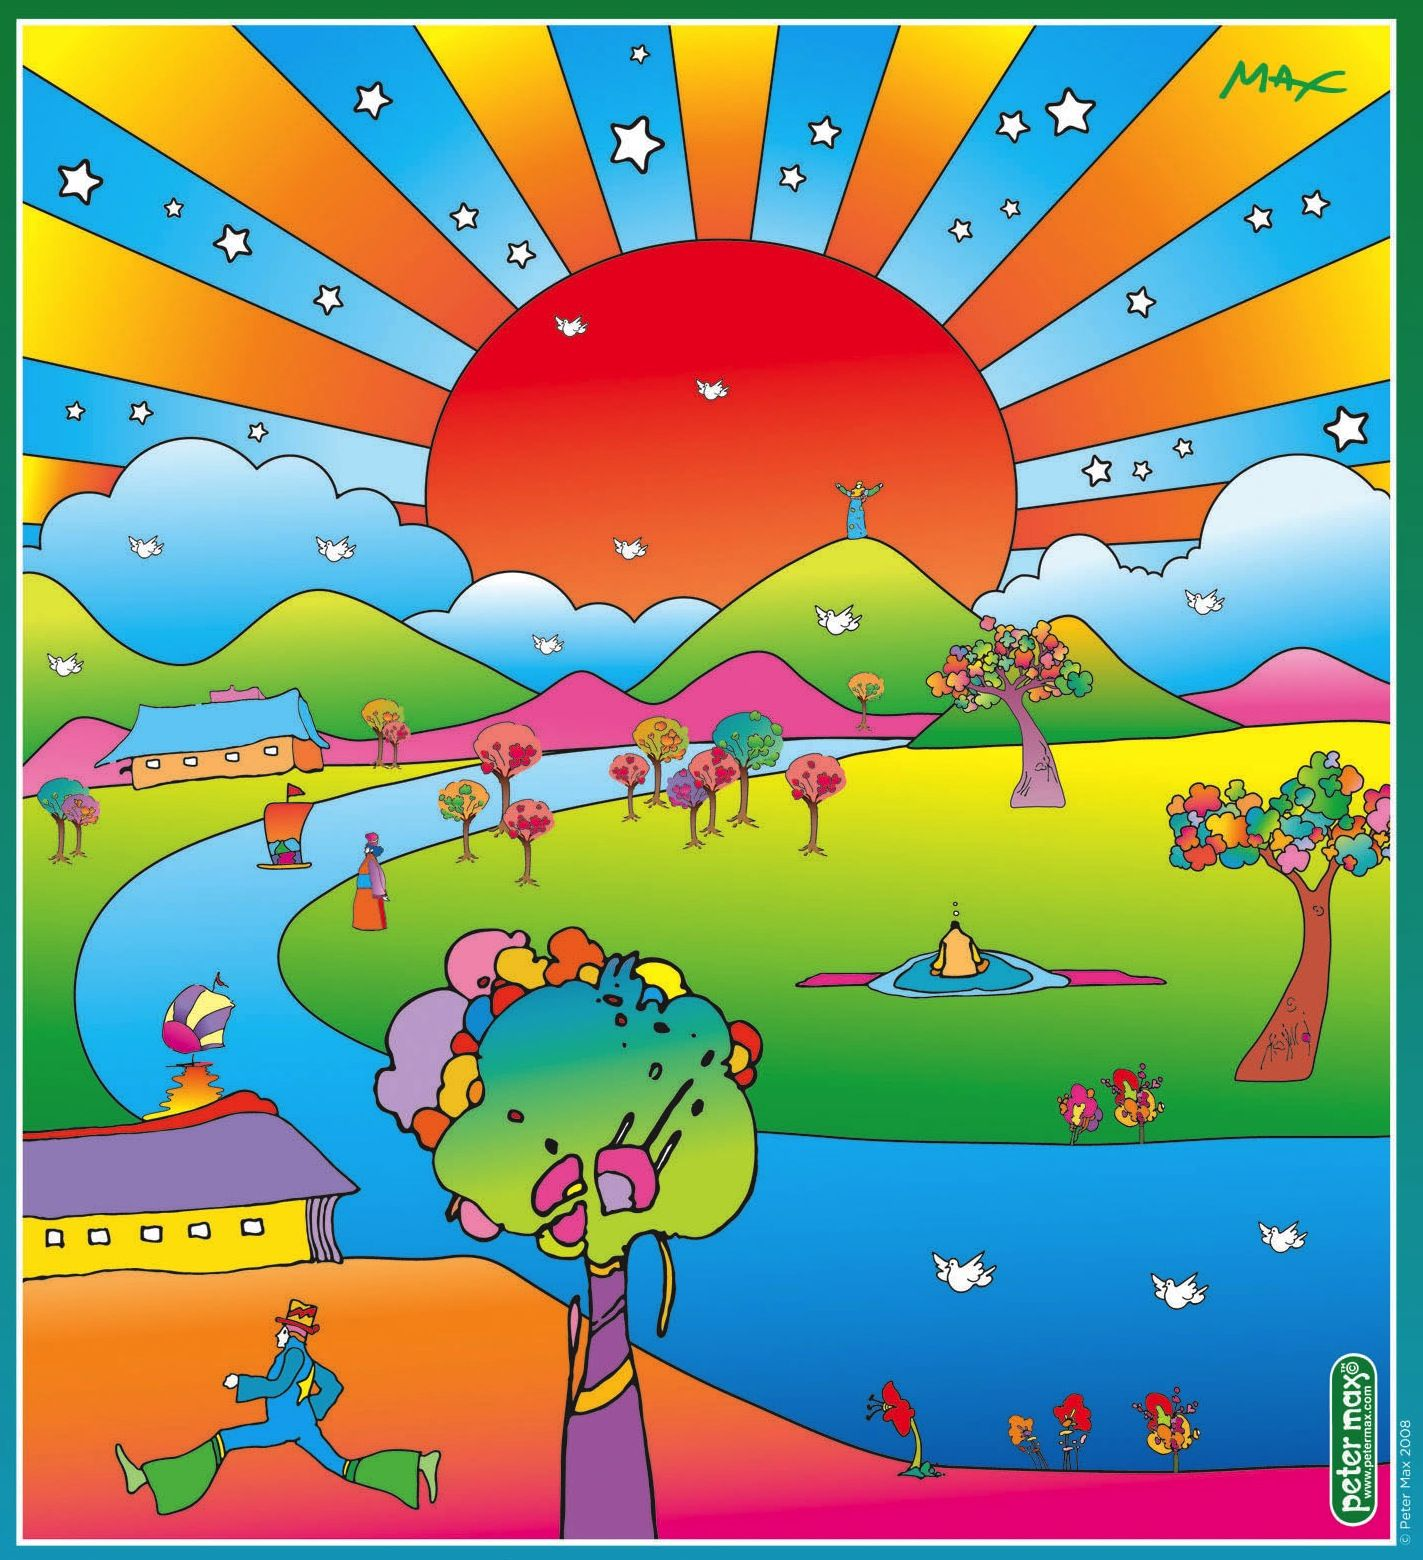 Peter Max | Peter max art, Peter max, Psychedelic poster